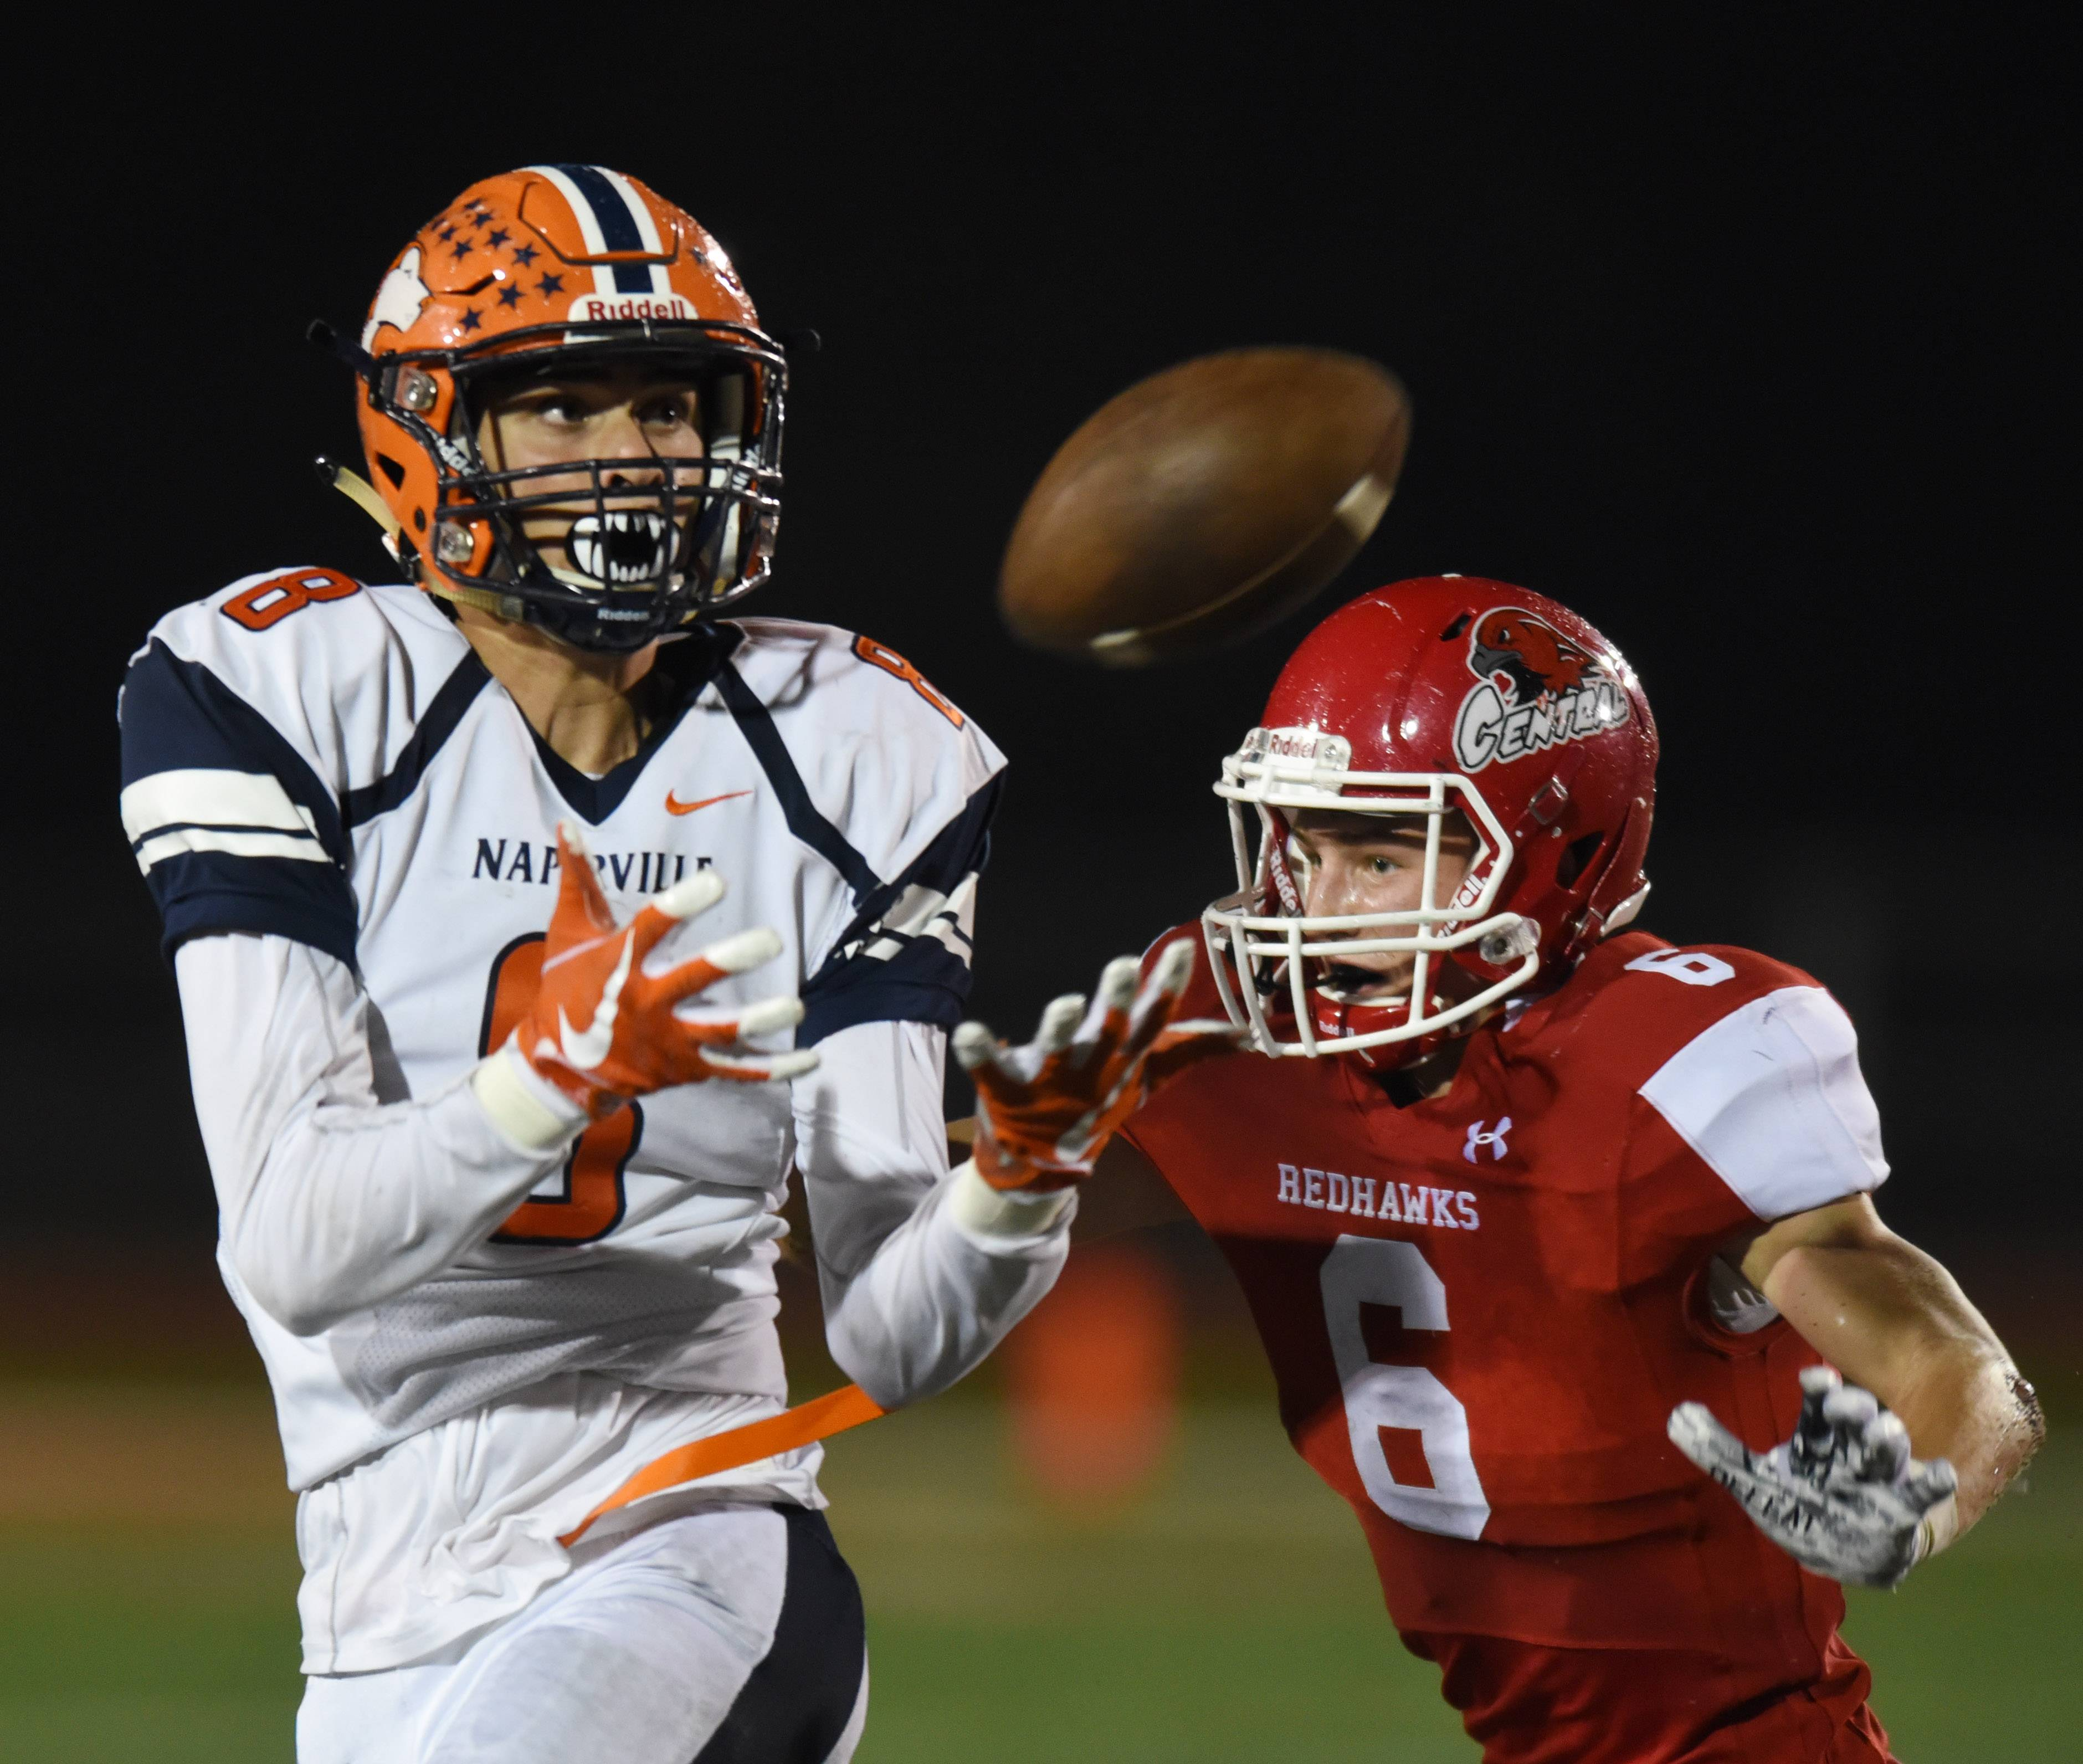 Naperville North's Nick Calcagno, left, catches a pass in front of Naperville Central's Branden Lindmark at Benedetti-Wehrli Stadium in Naperville Friday.